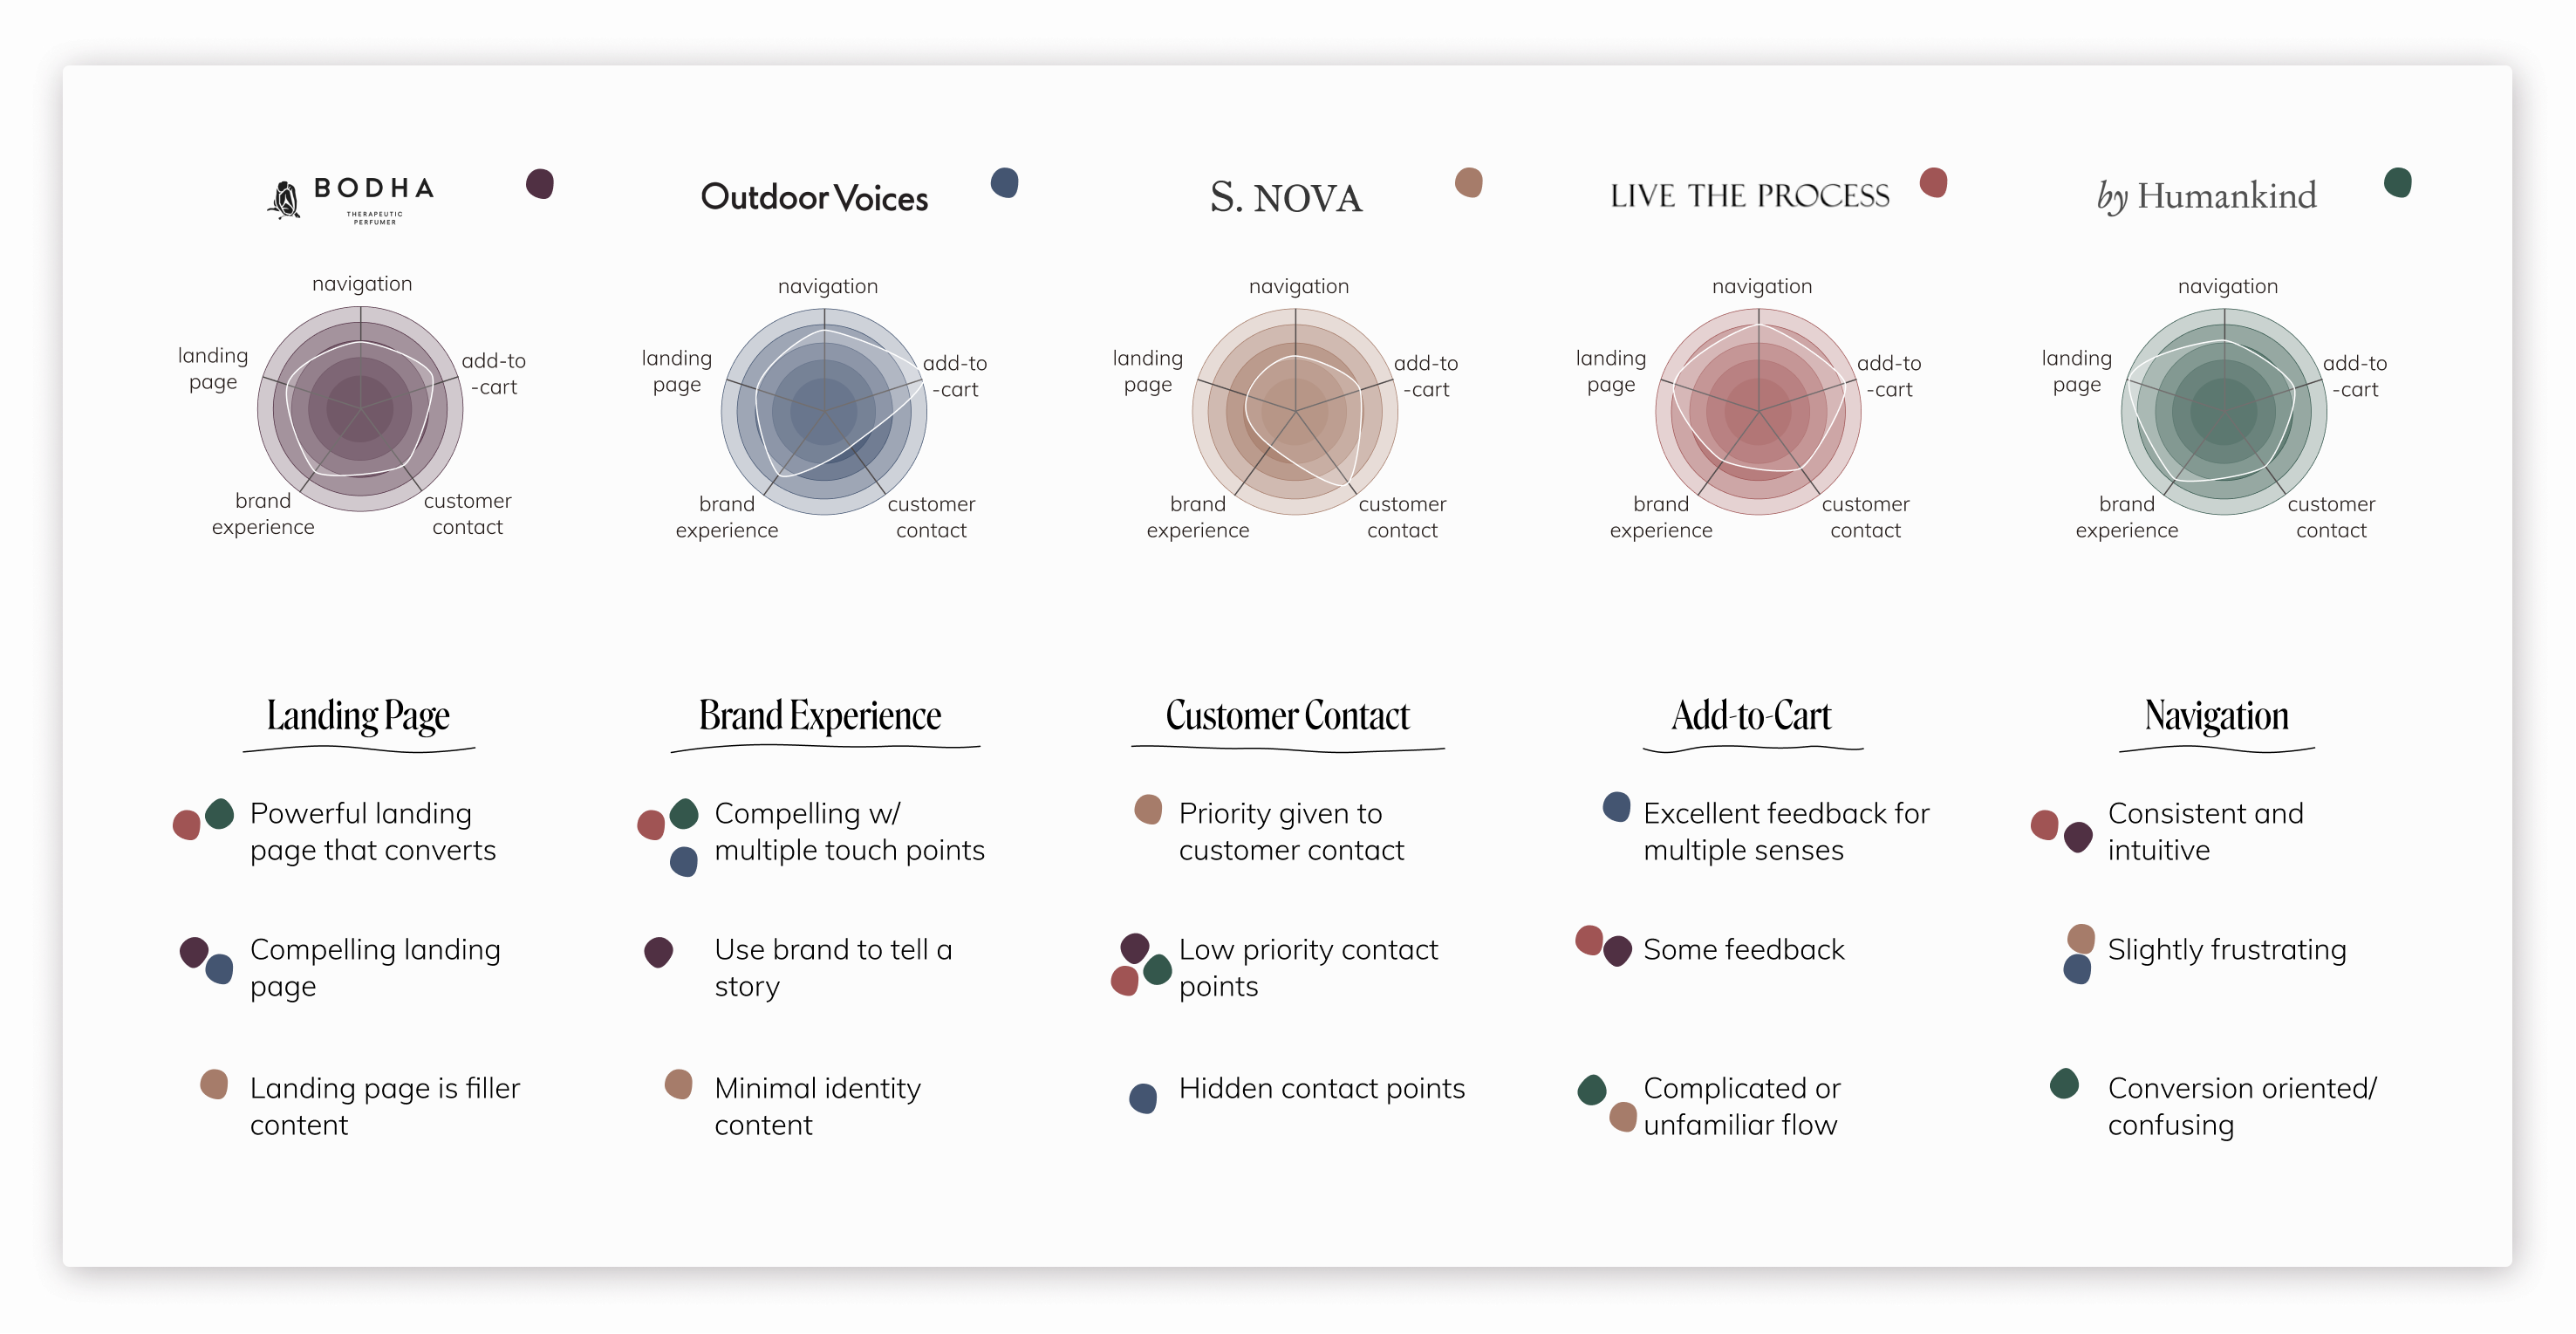 Competitive Analysis that focuses on navigation and customer contact points.